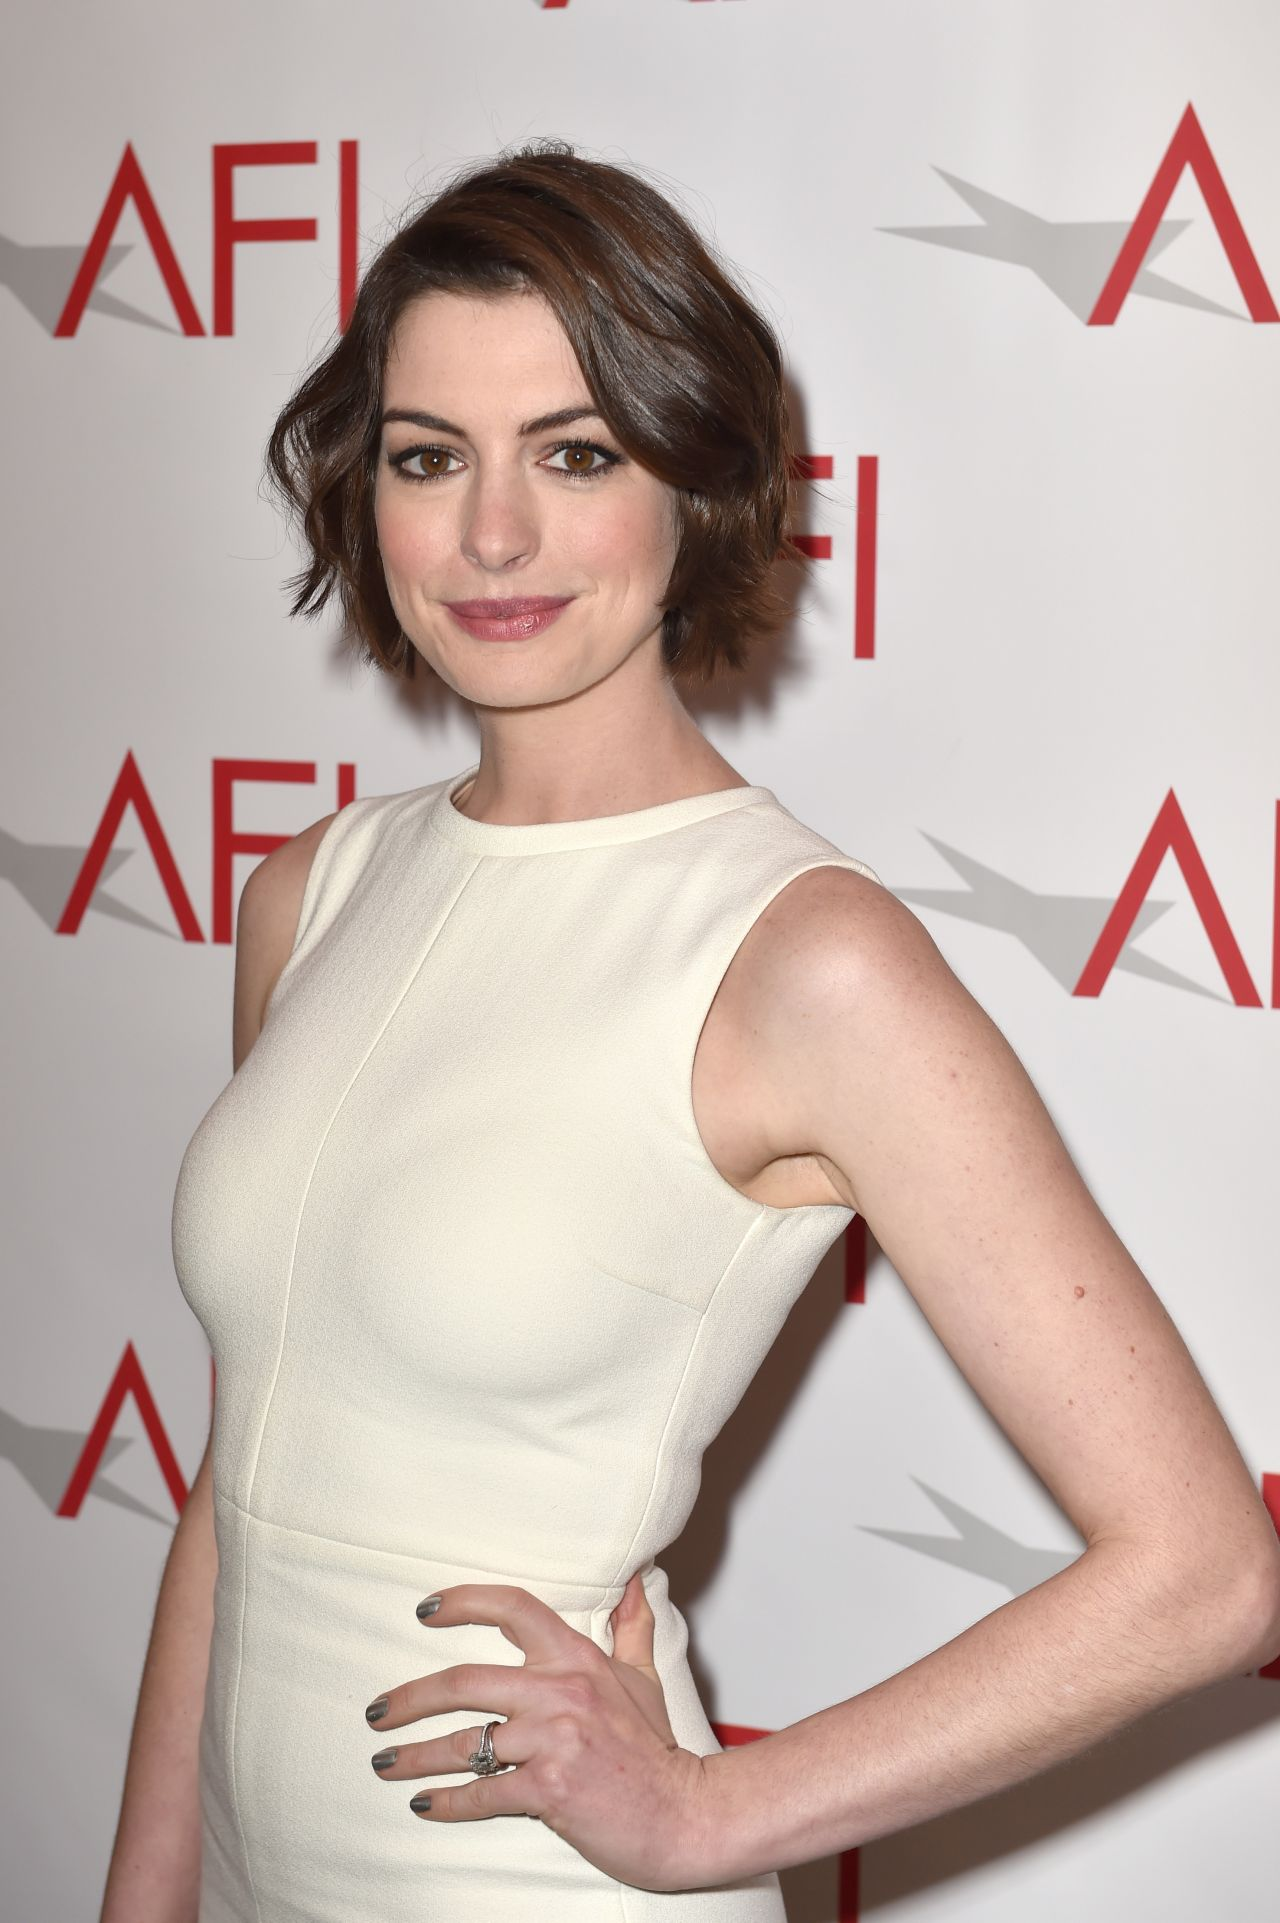 Anne Hathaway | Disney Wiki | FANDOM powered by Wikia